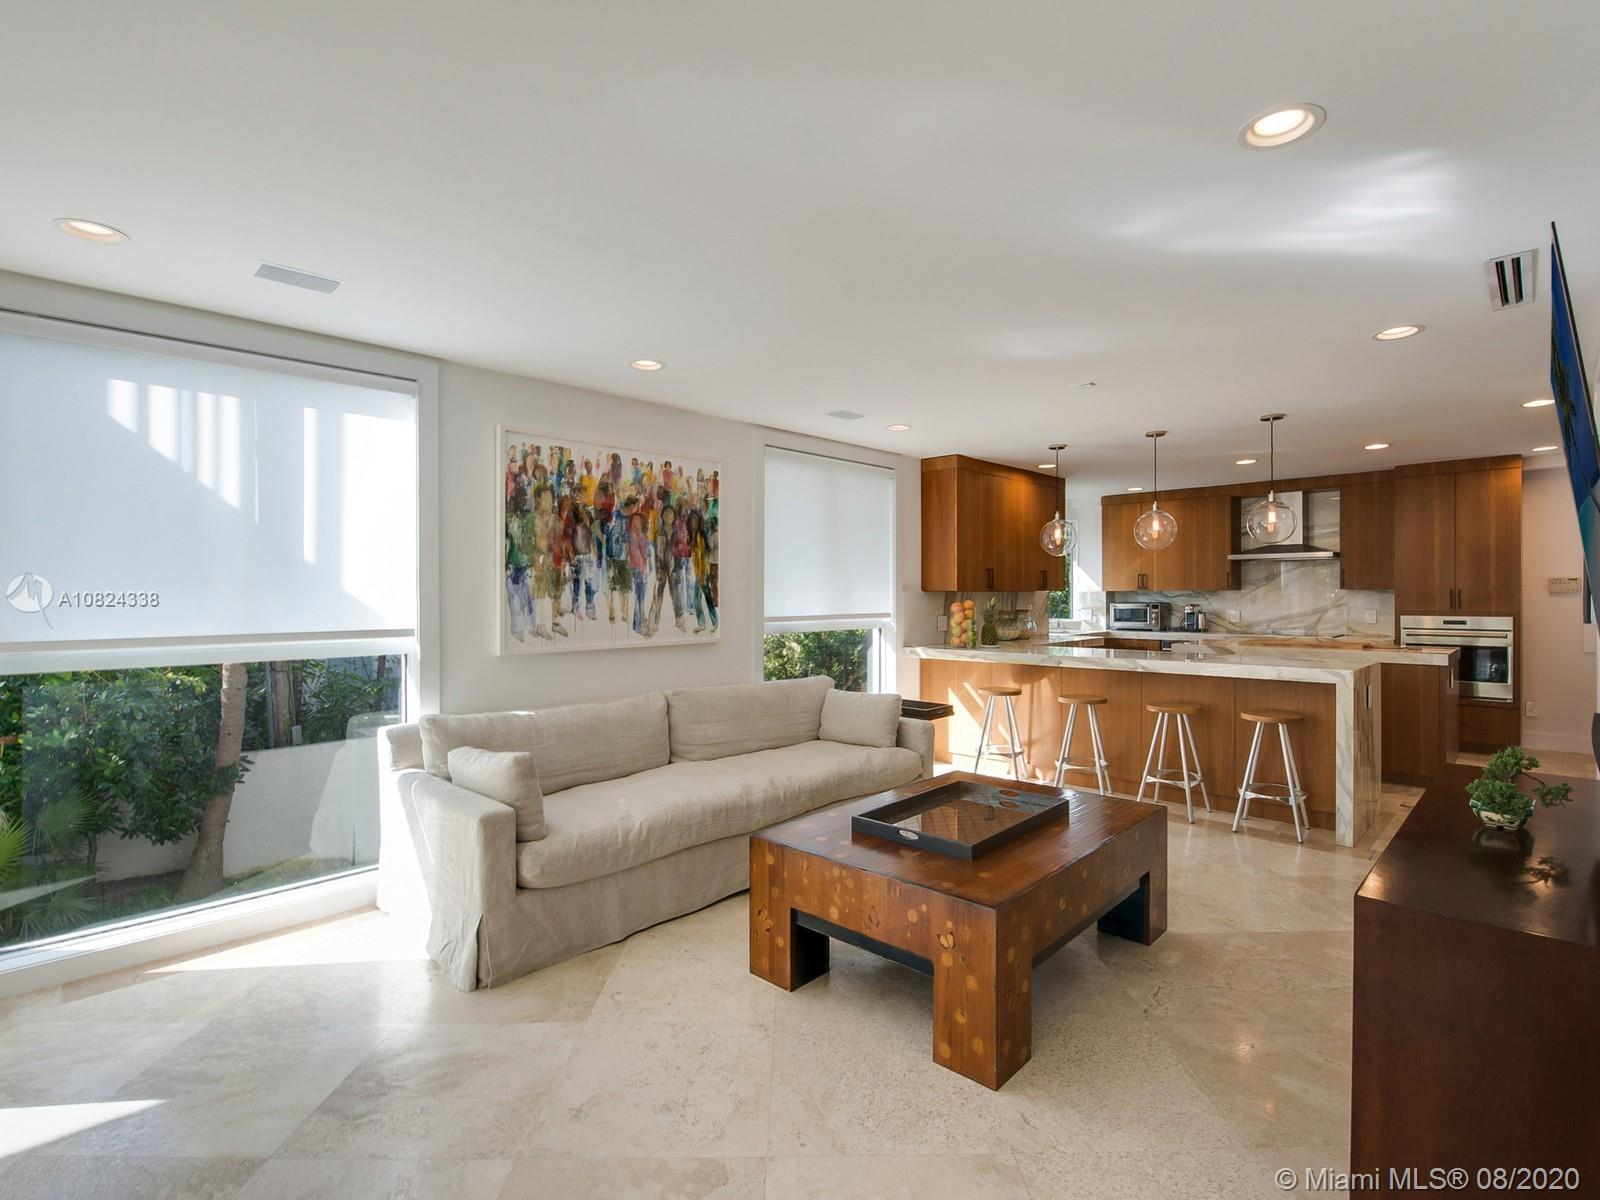 690 Allendale Rd, Key Biscayne, Florida 33149, 7 Bedrooms Bedrooms, ,7 BathroomsBathrooms,Residential,For Sale,690 Allendale Rd,A10824338